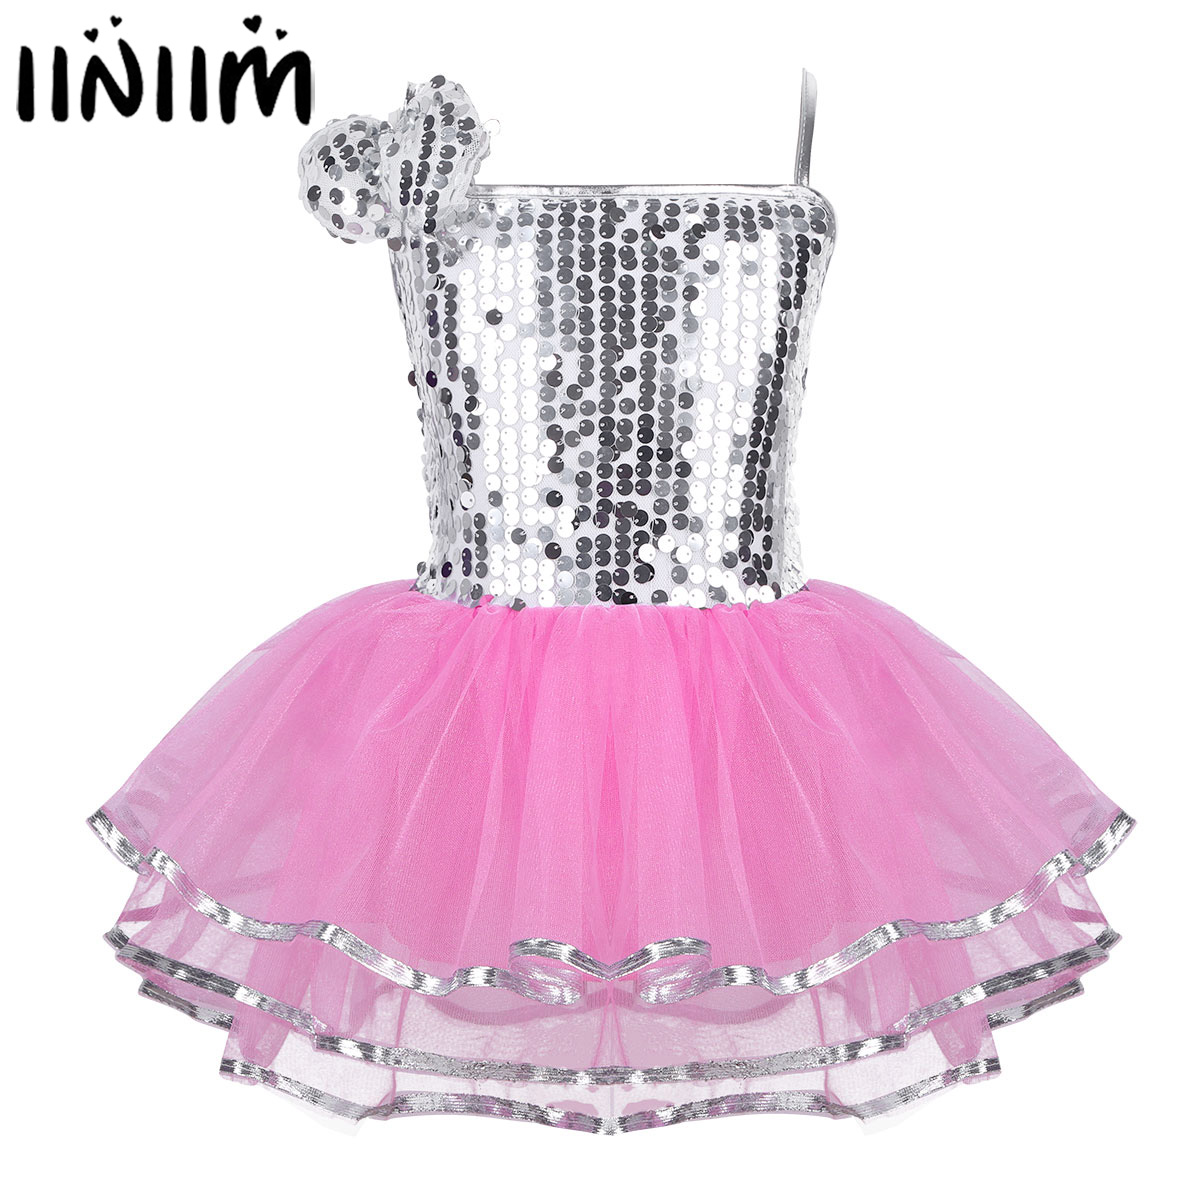 iiniim Kids Girls Jazz Lyrical Dancewear Costumes Spaghetti Straps Sparkly Sequins Dress Up with Hairclip Dance Performance